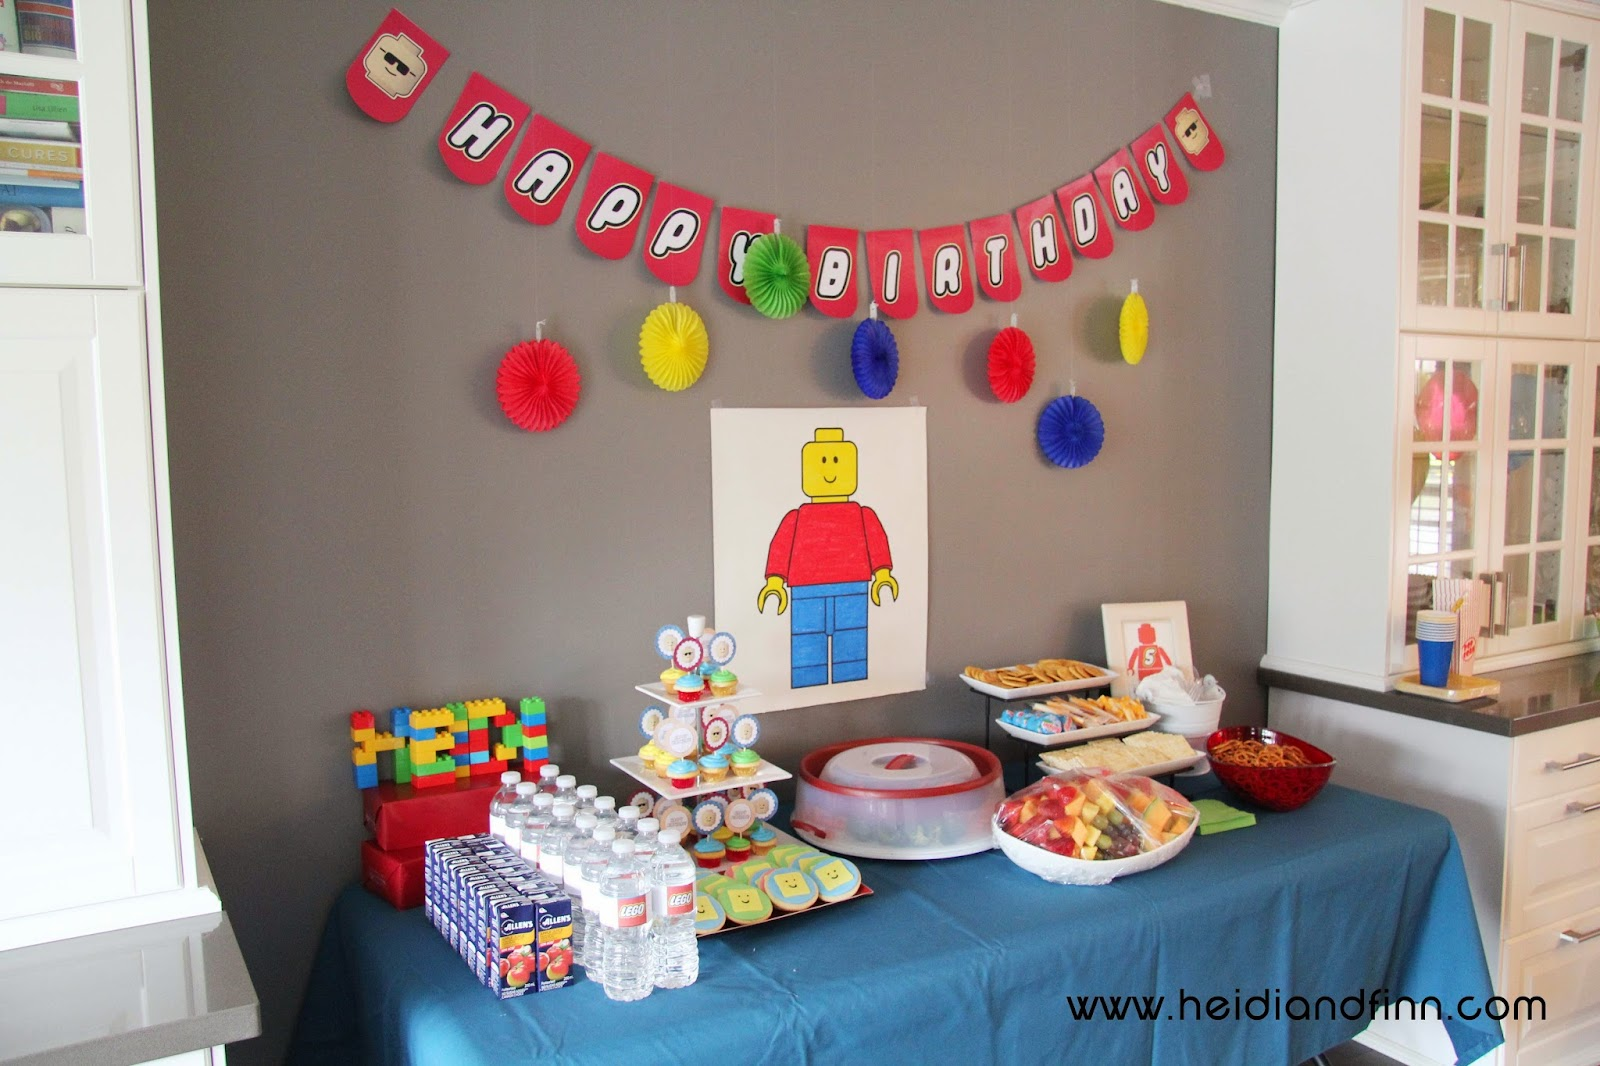 HeidiandFinn modern wears for kids Lego Party birthday ideas